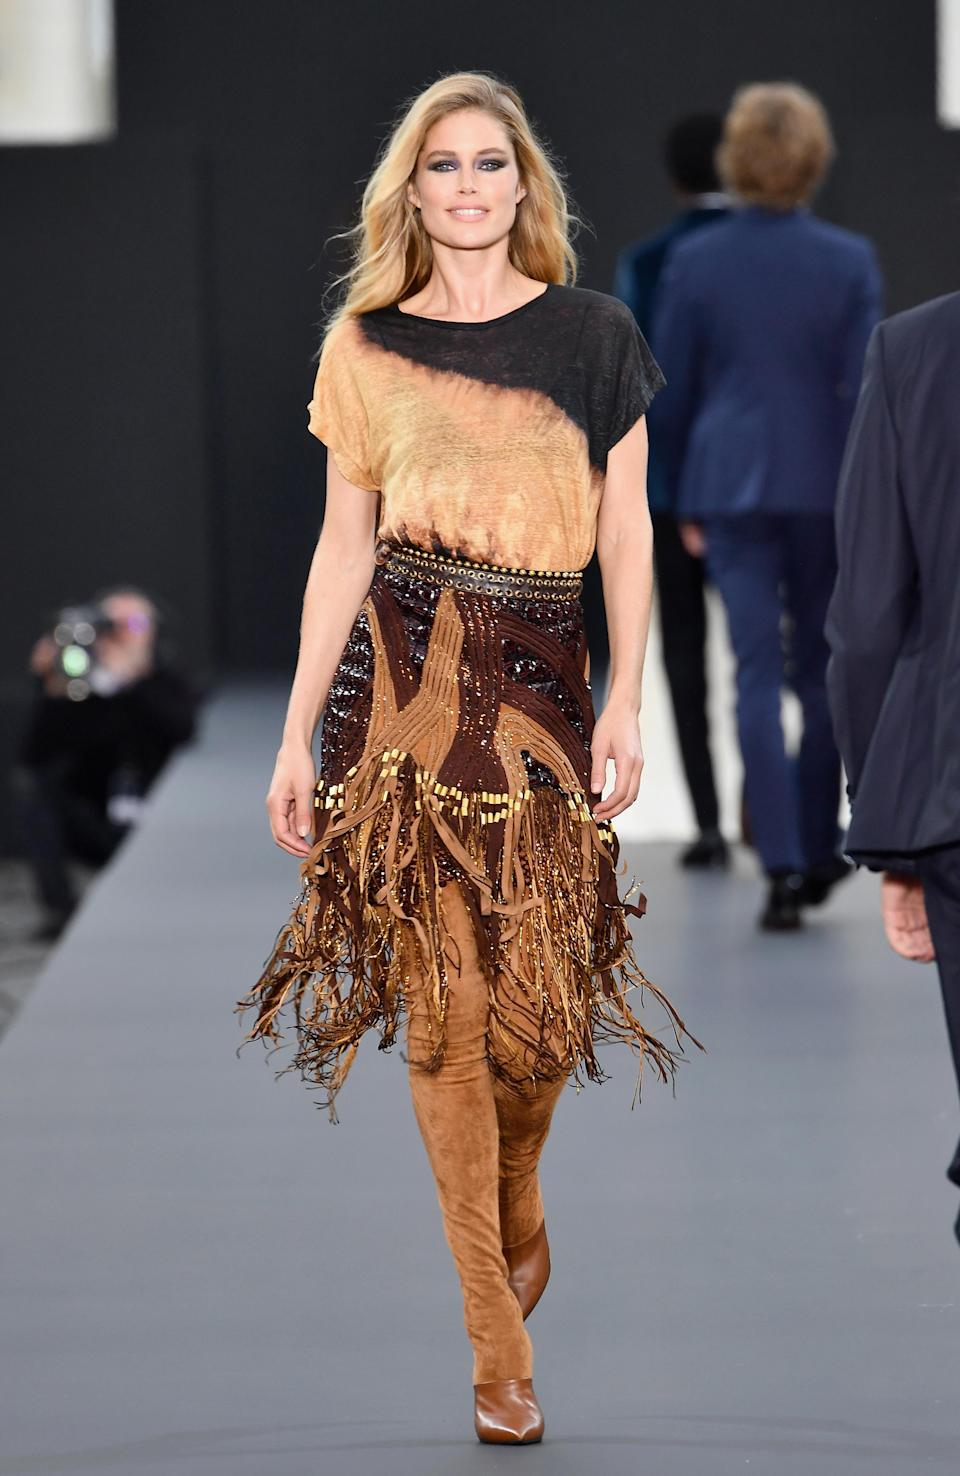 <p>The Dutch model was all smiles on the catwalk. (Photo: Getty Images) </p>